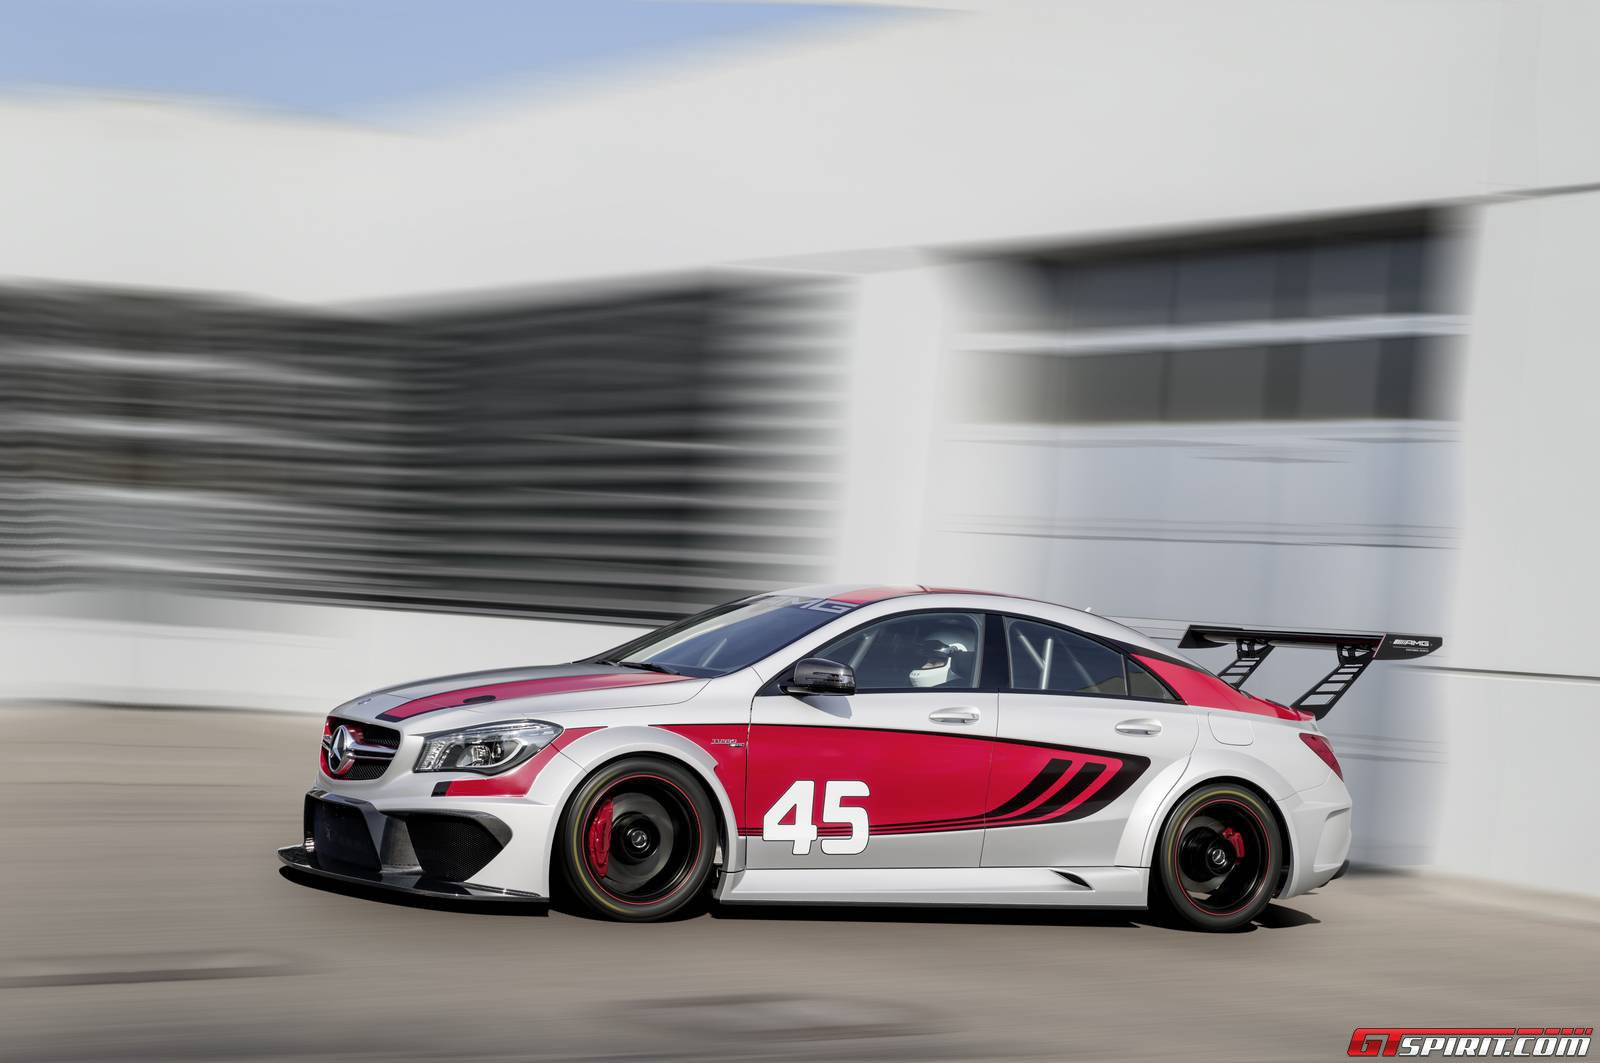 Mercedes Cla45 Amg Official Mercedes Benz Cla 45 Amg Racing Series Concept